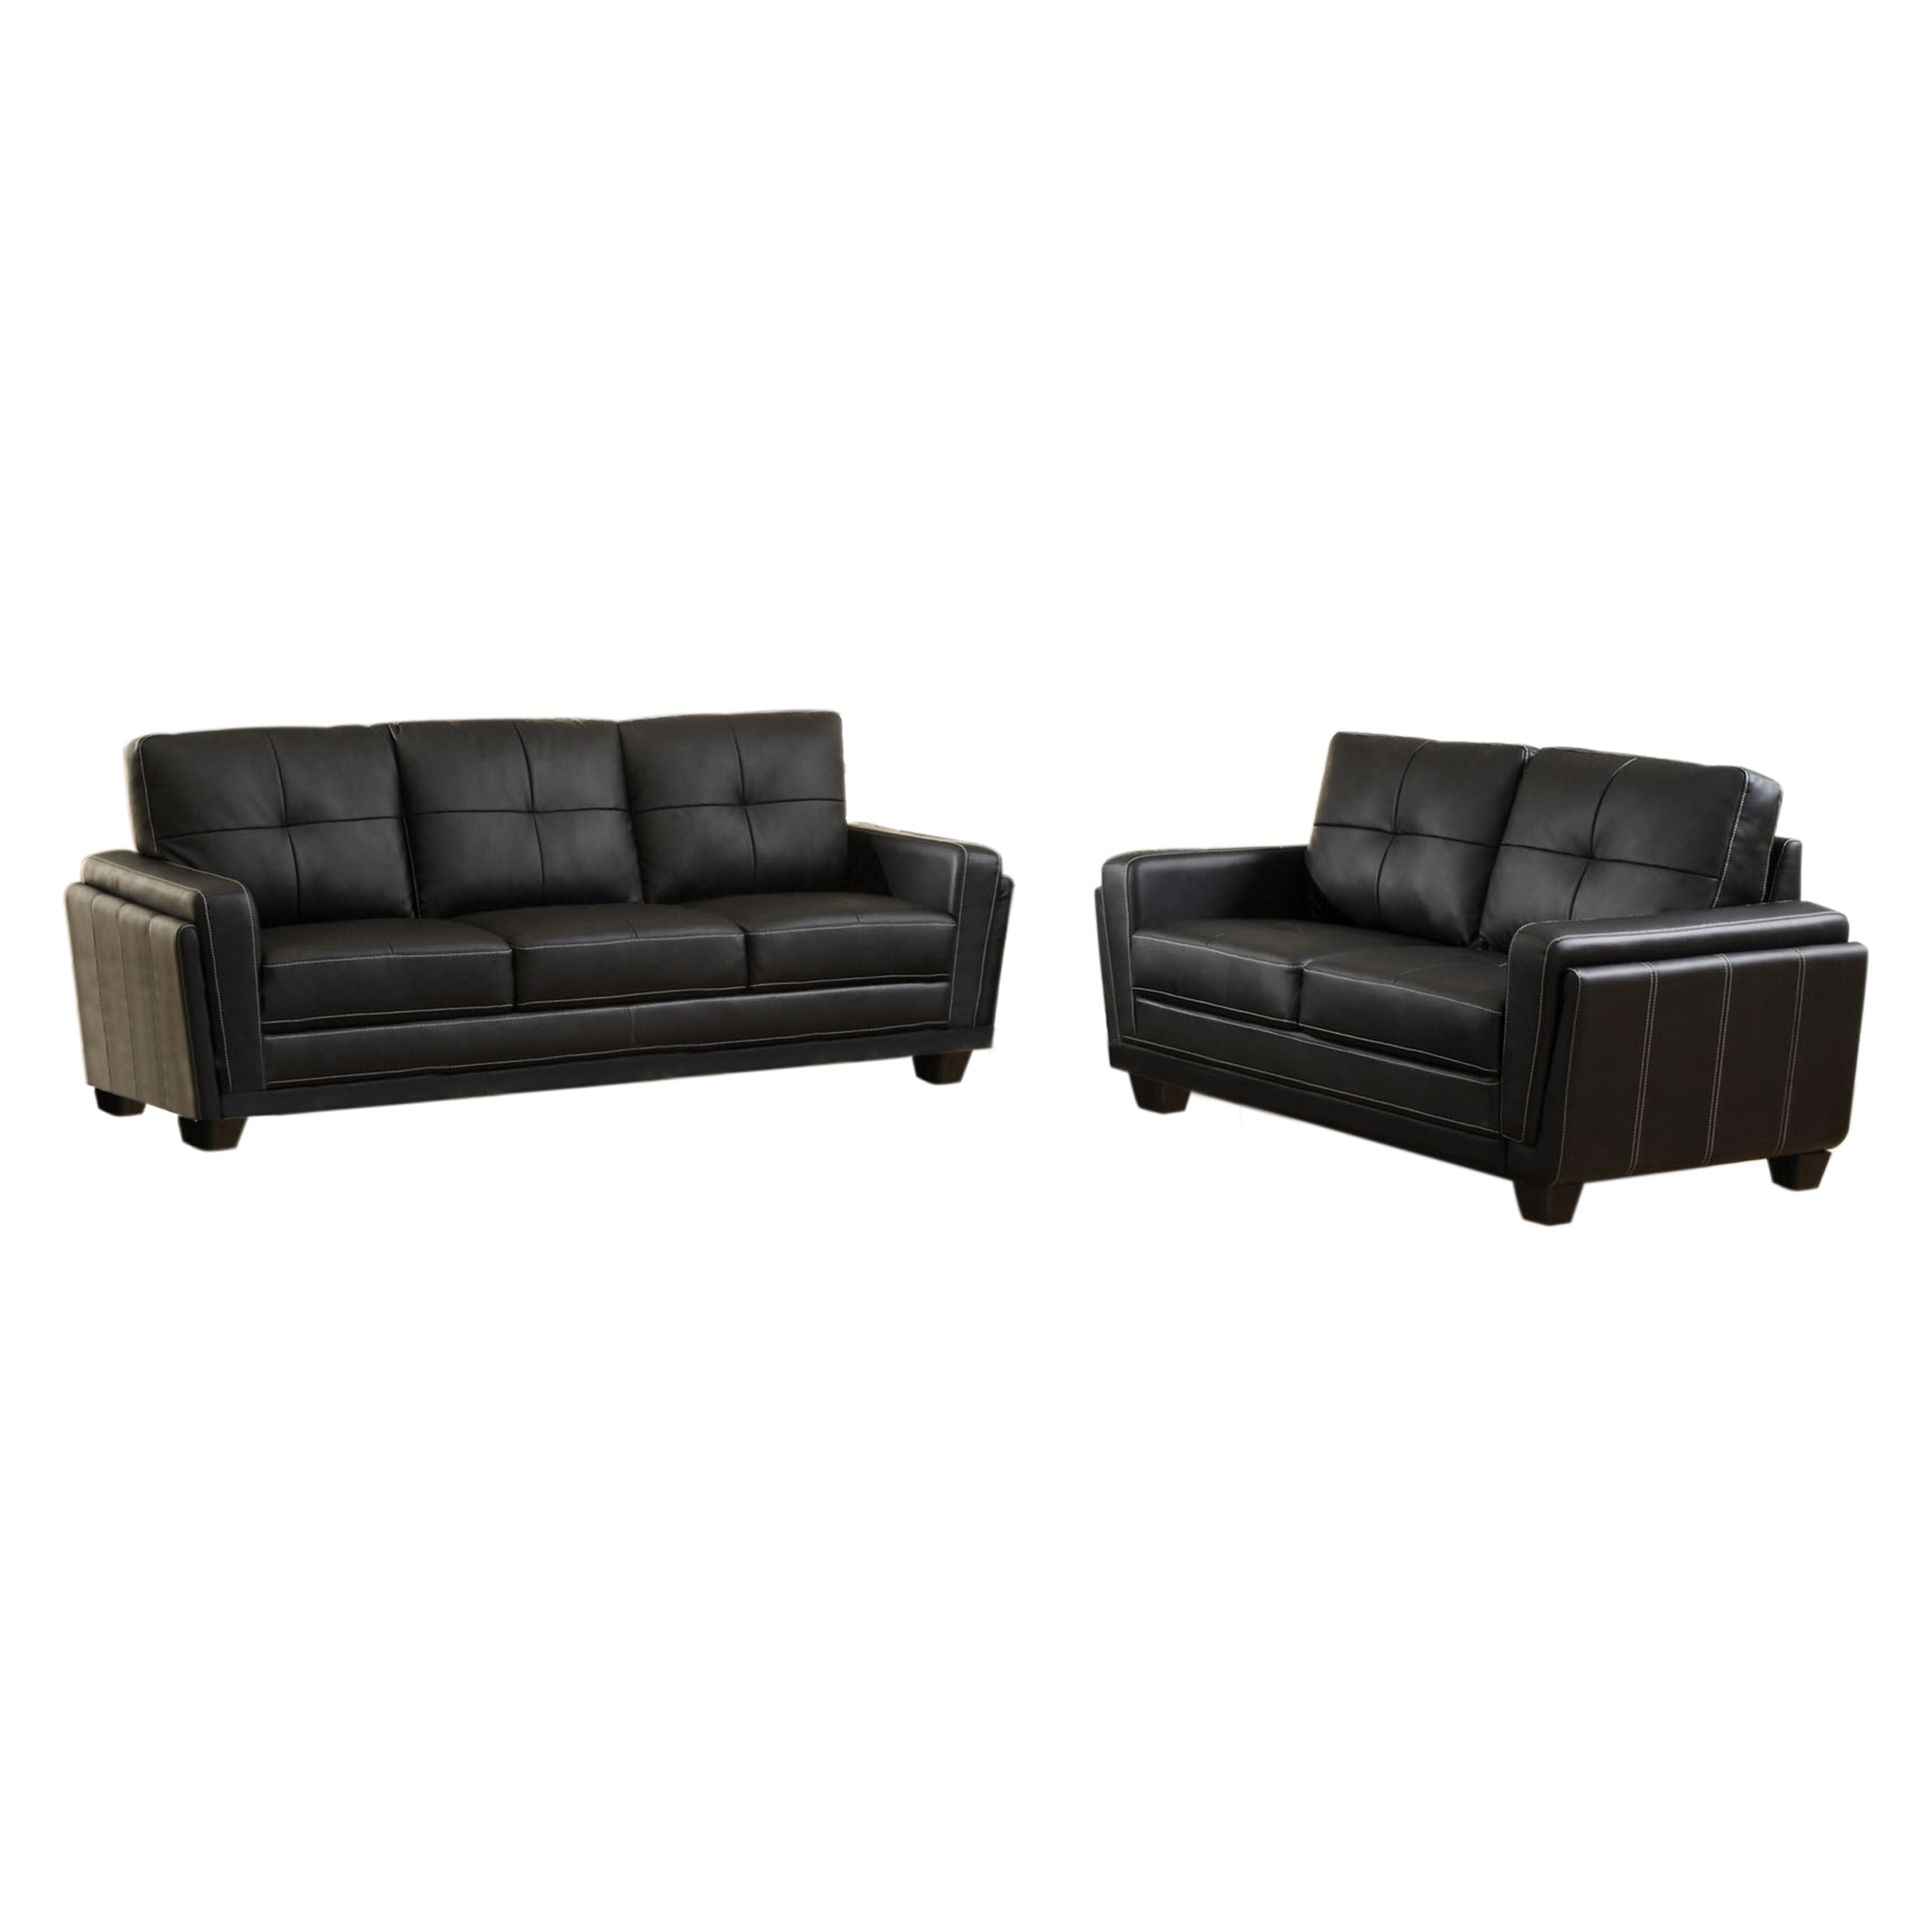 Bedford Contemporary Black Tufted Sofa by FOA